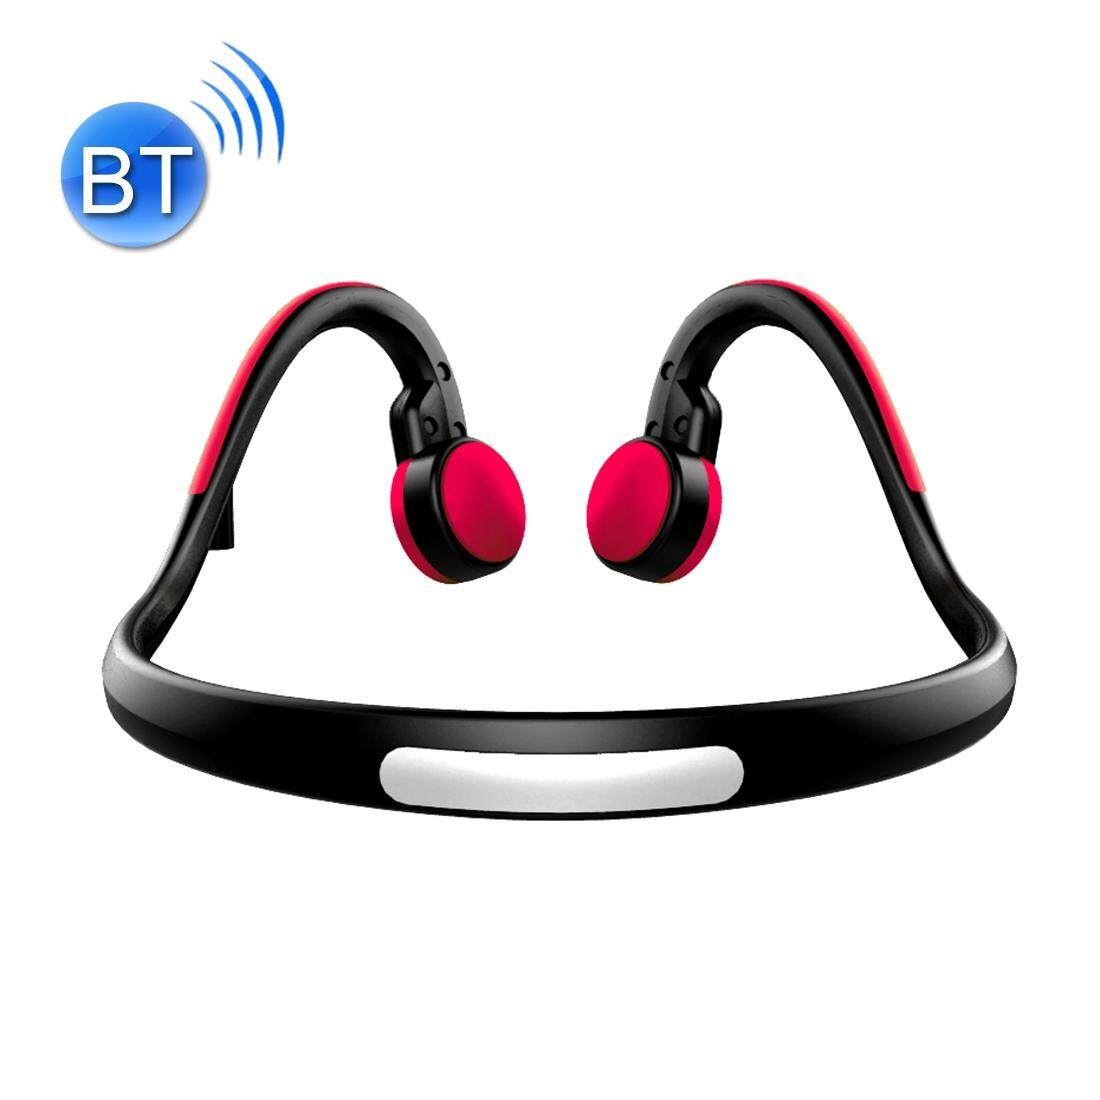 BT-BK Bone Conduction Bluetooth V4.1+EDR Sports Over the Ear Headphone Headset with Mic, For iPhone, Samsung, Huawei, Xiaomi, HTC and Other Smart Phones or Other Bluetooth Audio Devices(Red)